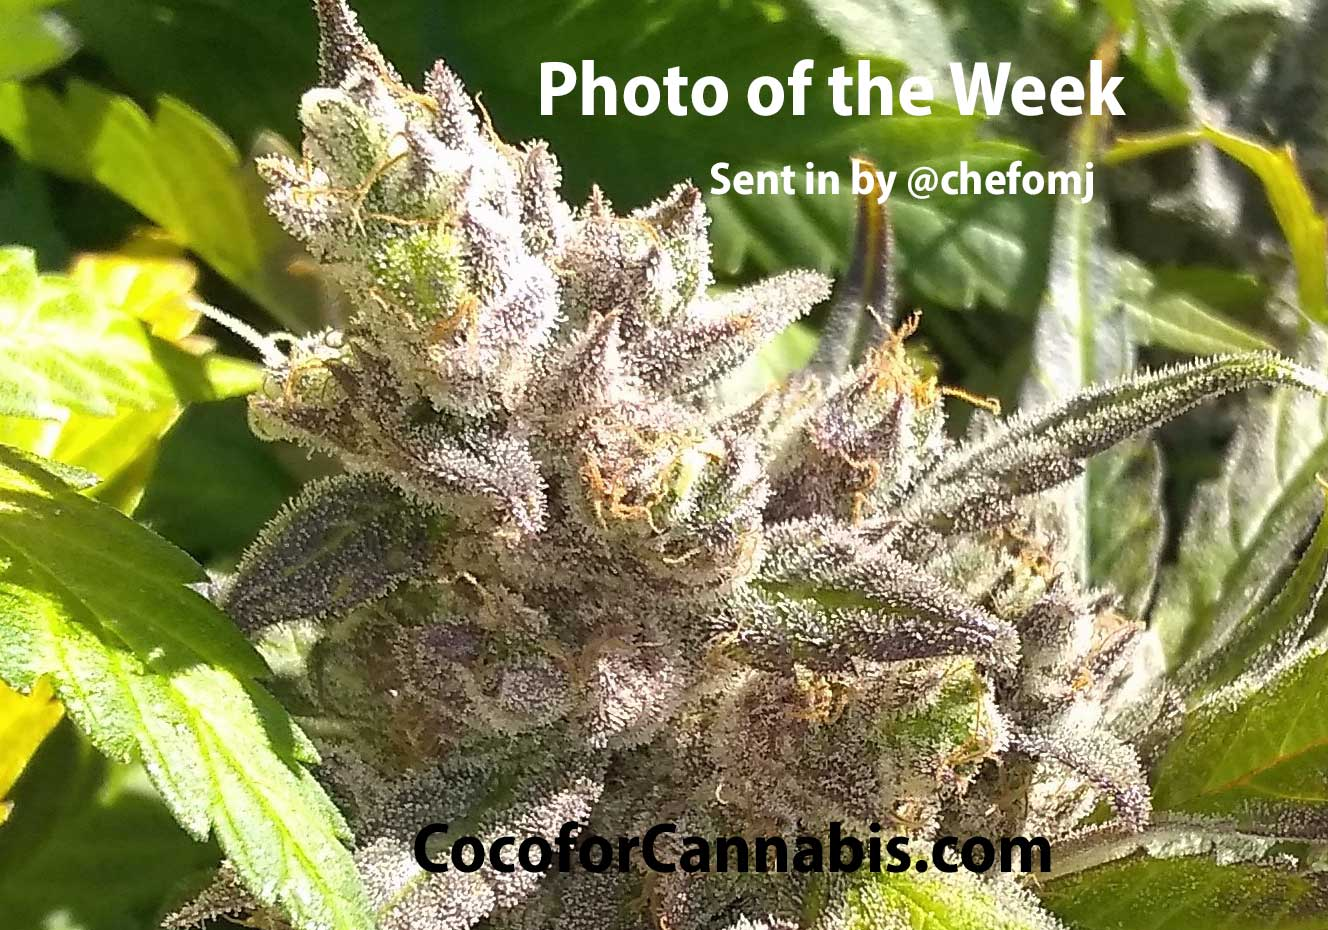 Coco for Cannabis Photo of the Week CBD